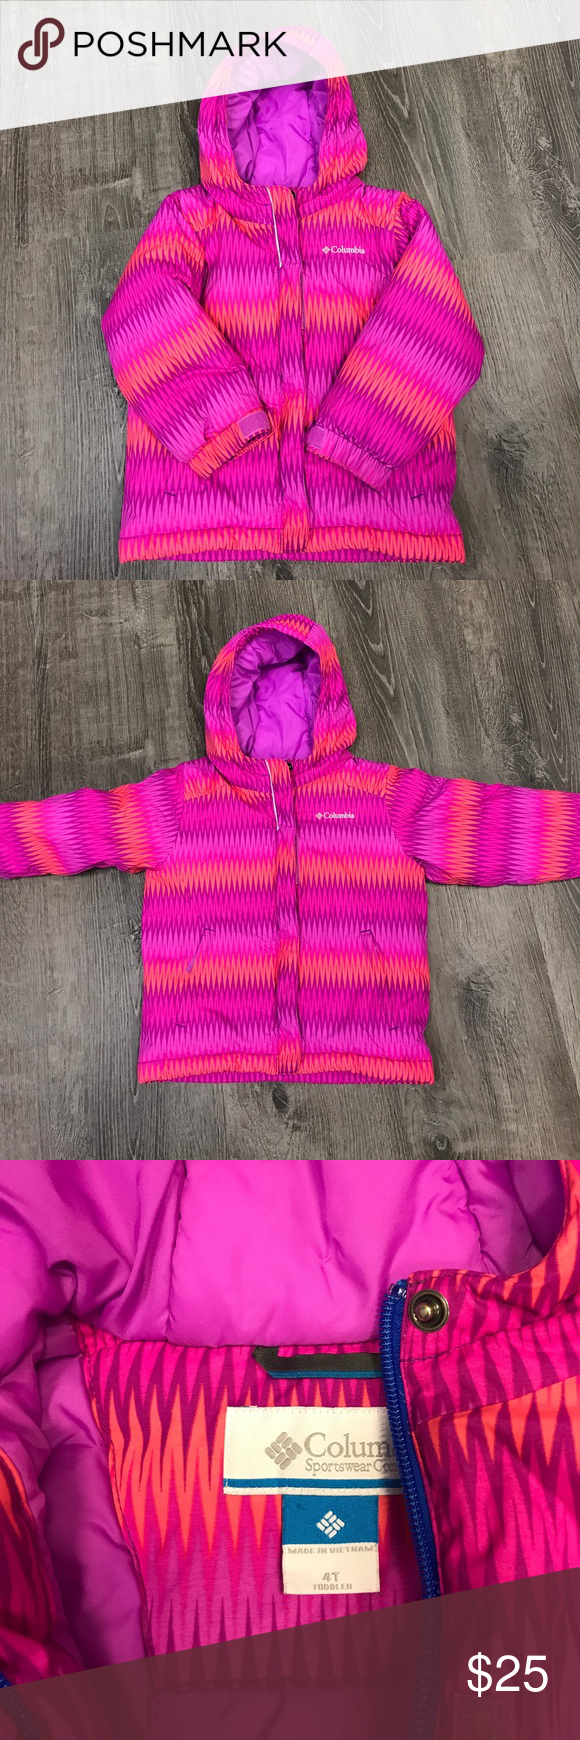 6f2757aed Toddler Girls Horizon Ride Columbia Winter Coat 4T Brightly colored ...